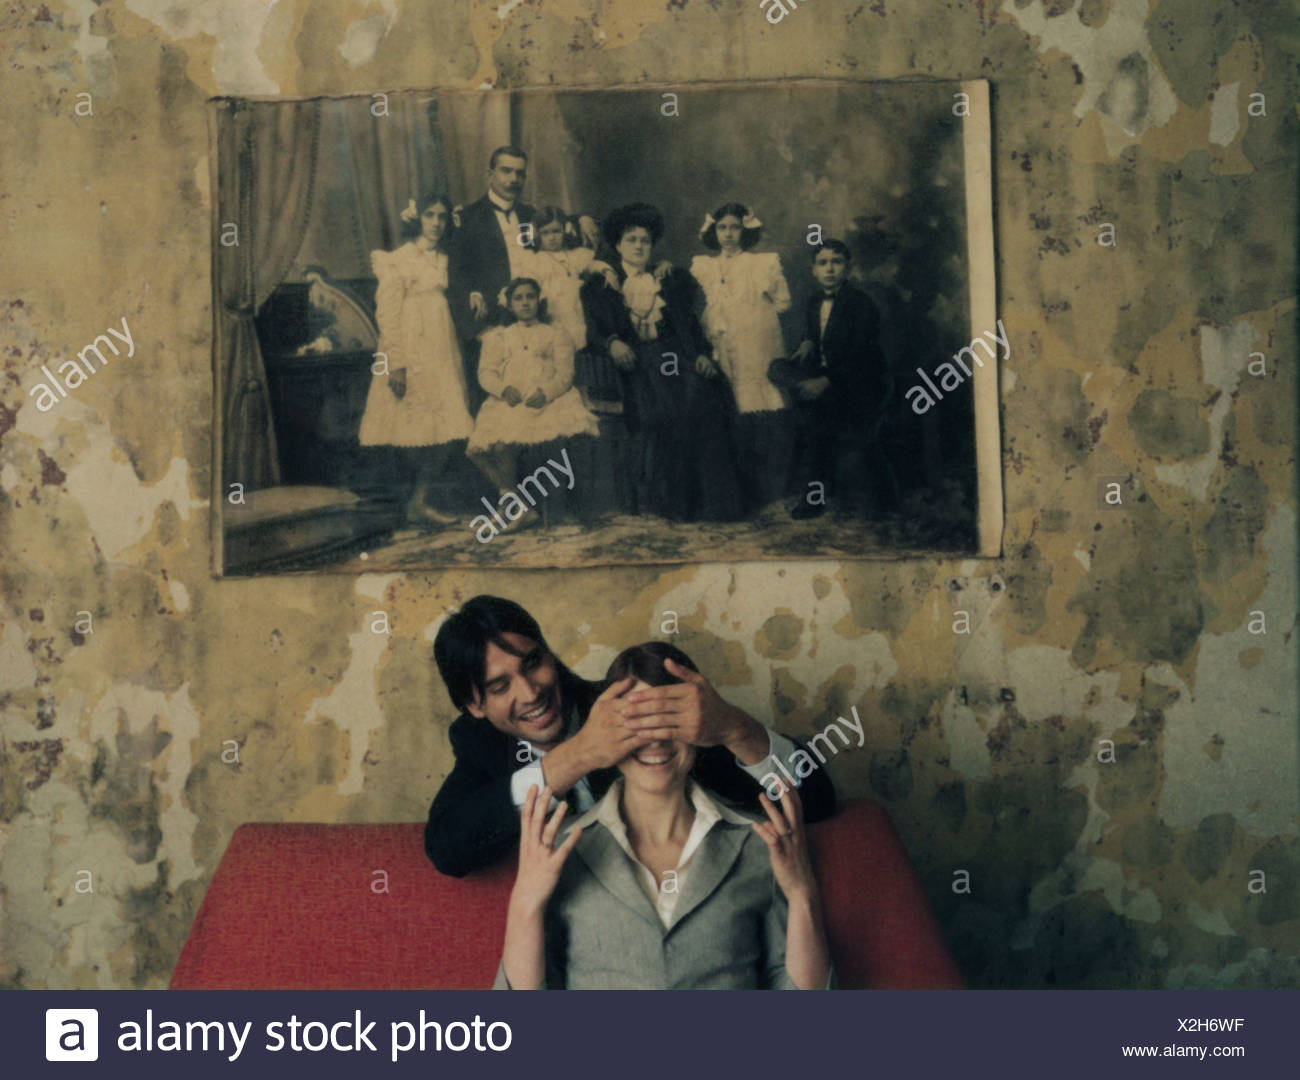 Man behind a woman sitting on red sofa, covering eyes, under black and white photo on wall - Stock Image